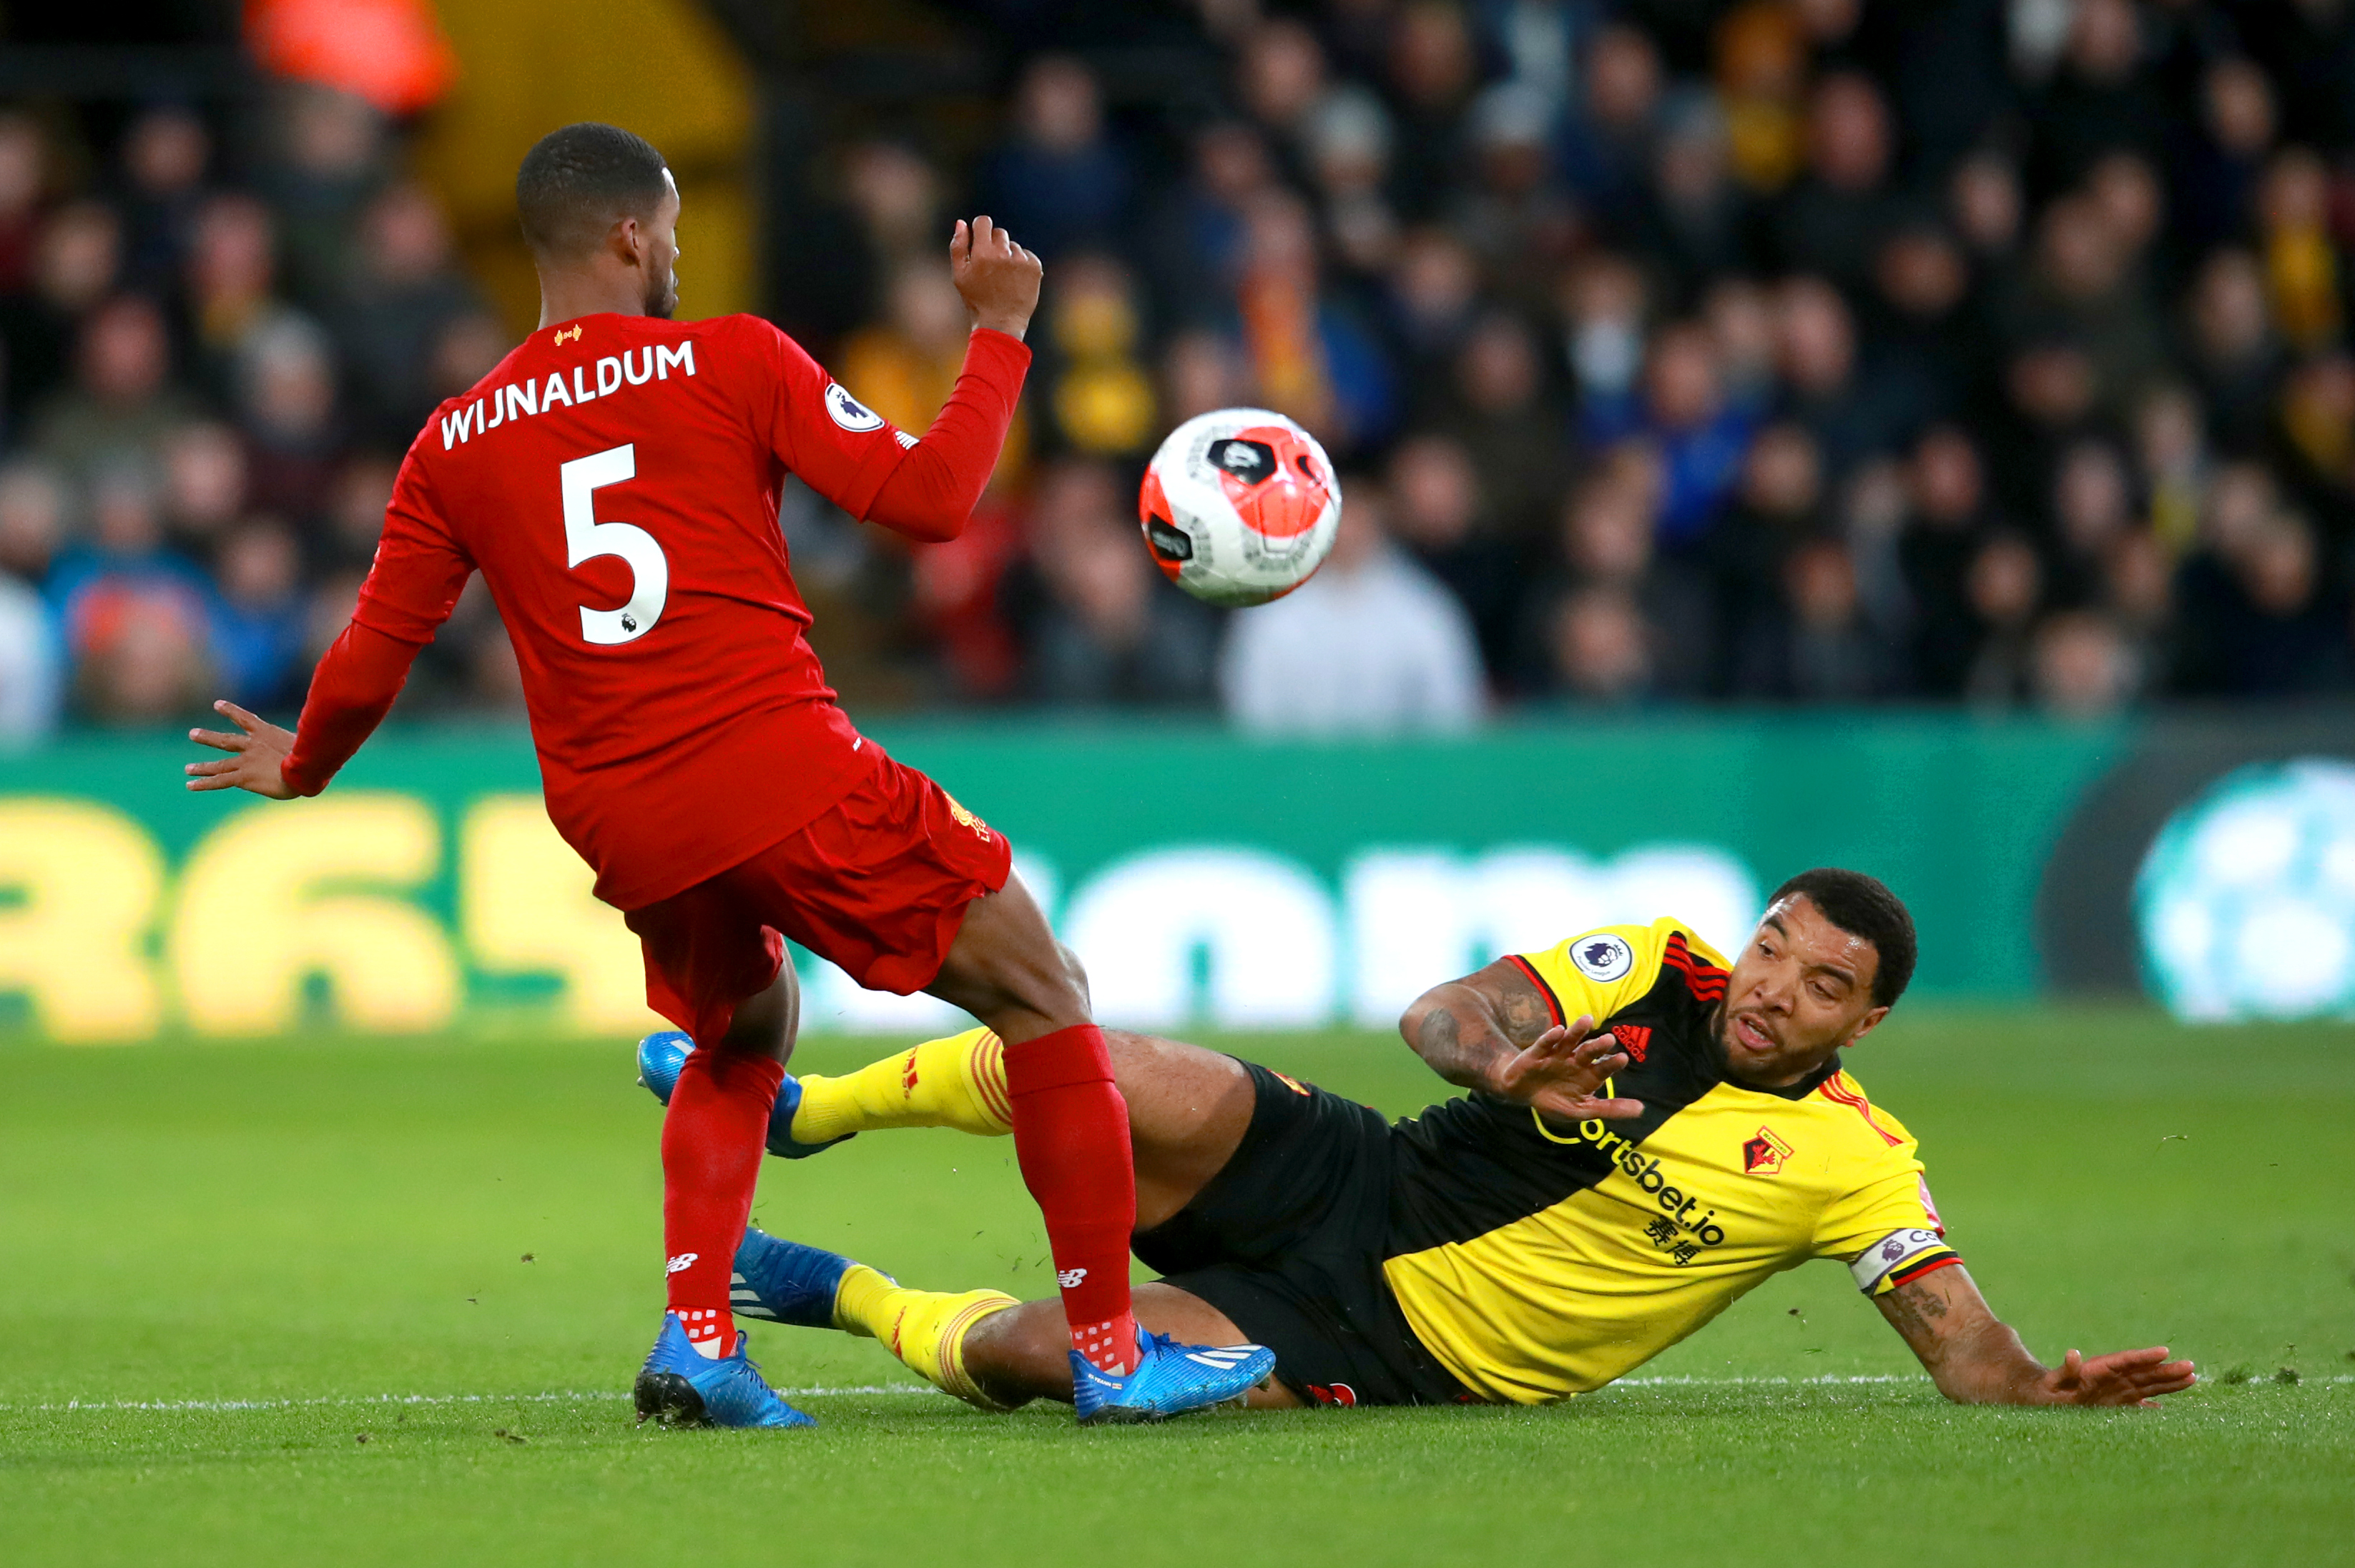 Liverpool's unbeaten Premier League run came to a shuddering halt at 44 games following a shock loss at lowly Watford. Troy Deeney, right, added to a brace from Ismaila Sarr to complete a resounding 3-0 scoreline as the Reds were stunned at Vicarage Road